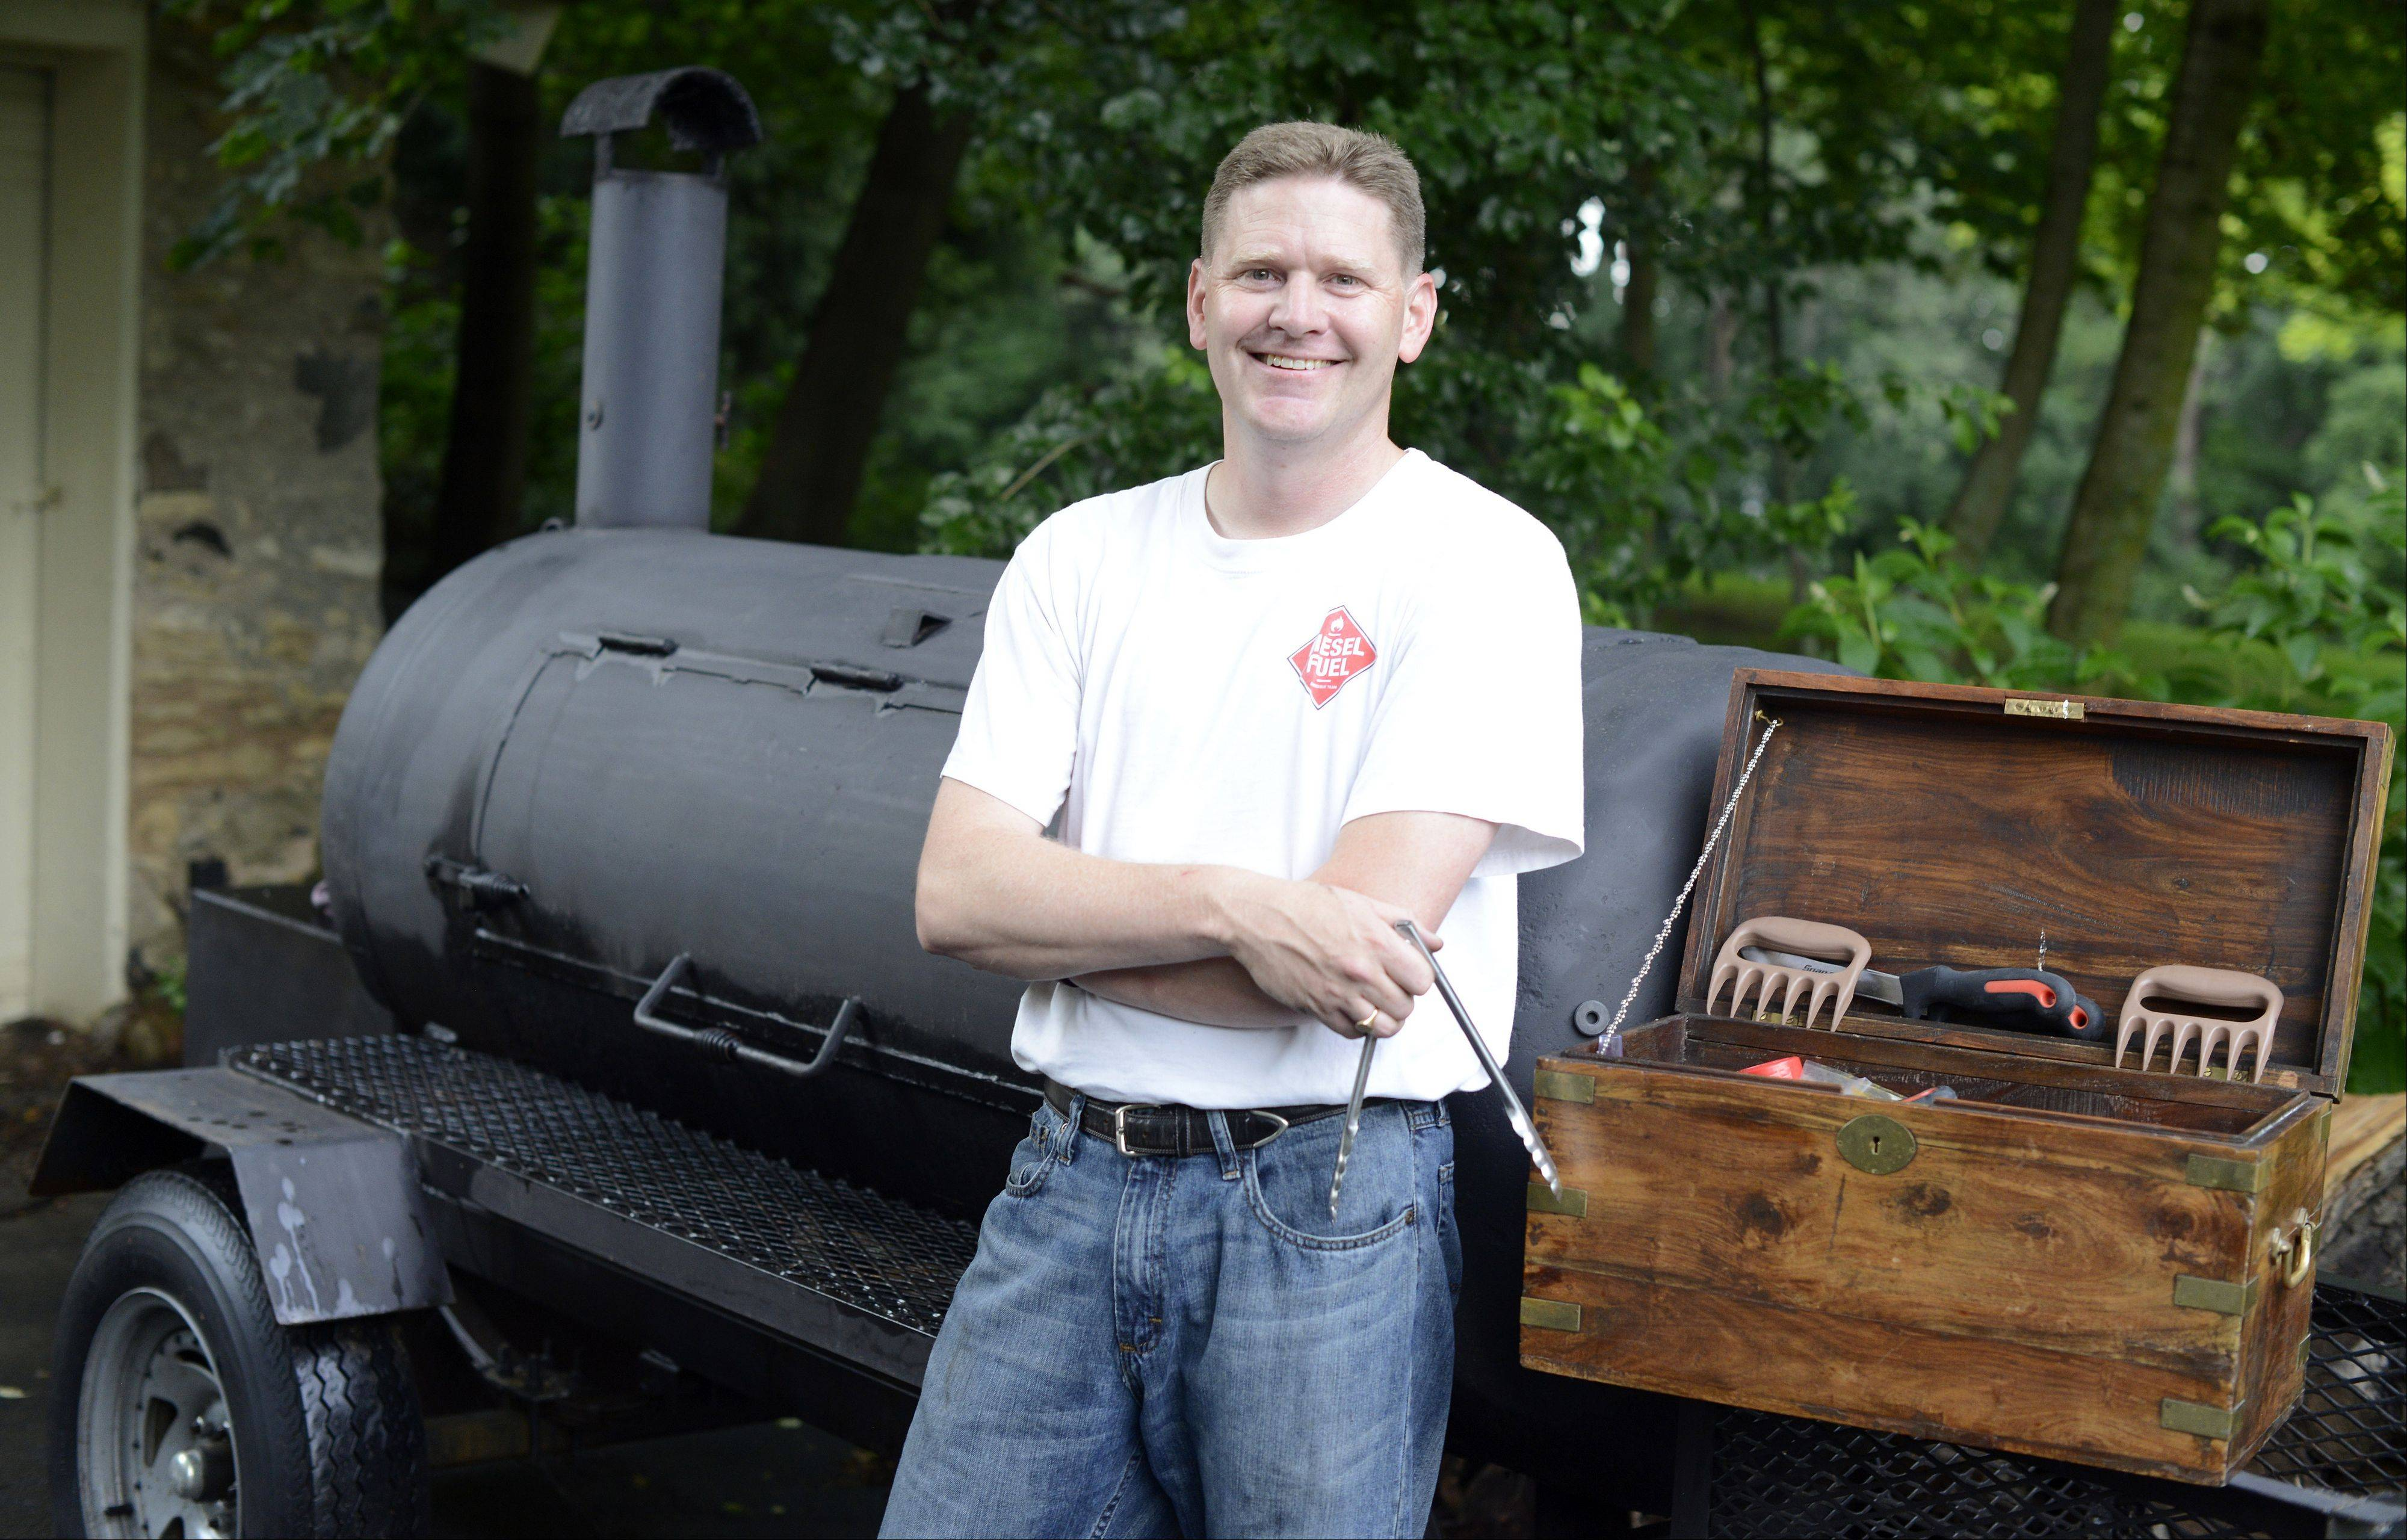 David Werner started smoking on a Weber grill and quickly moved onto larger cookers, like this rig he uses for pig roasts.